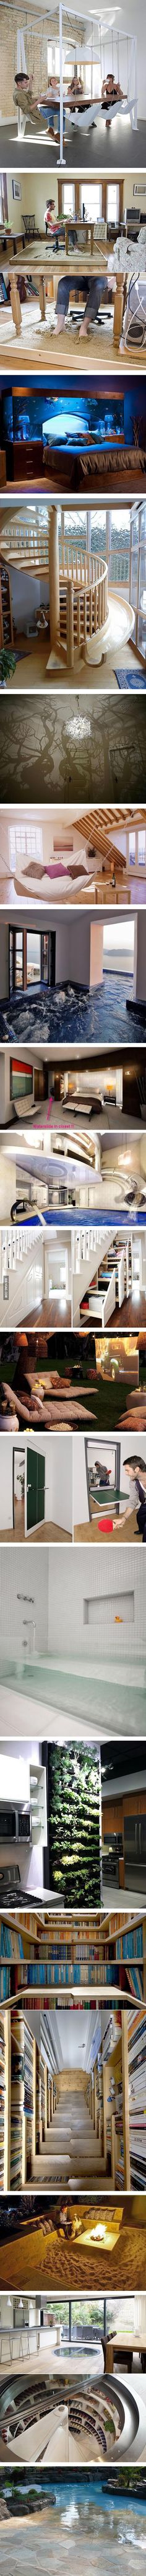 Who wouldn't want this in their home?!